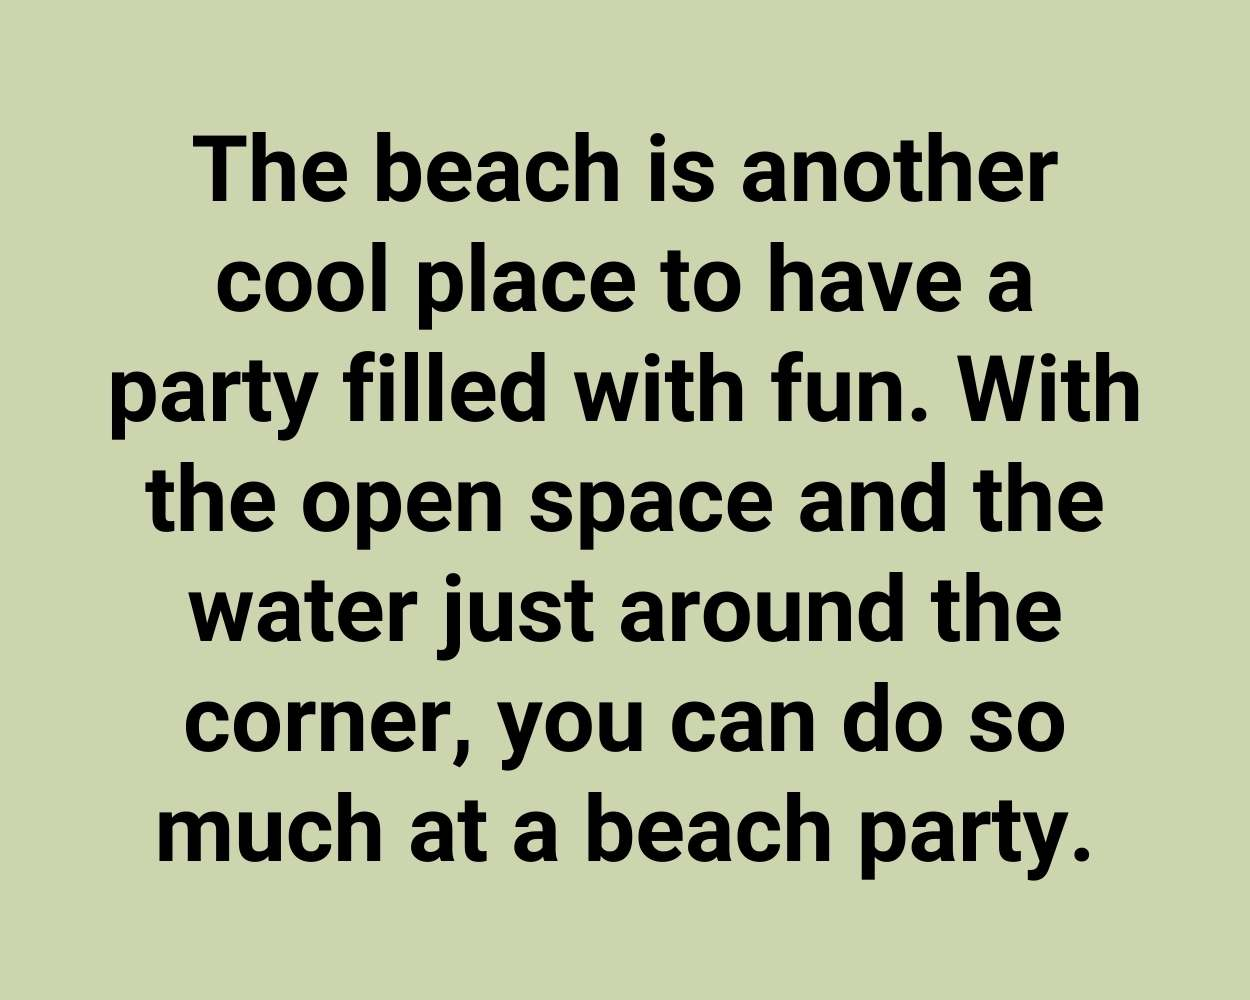 The beach is another cool place to have a party filled with fun. With the open space and the water just around the corner, you can do so much at a beach party.